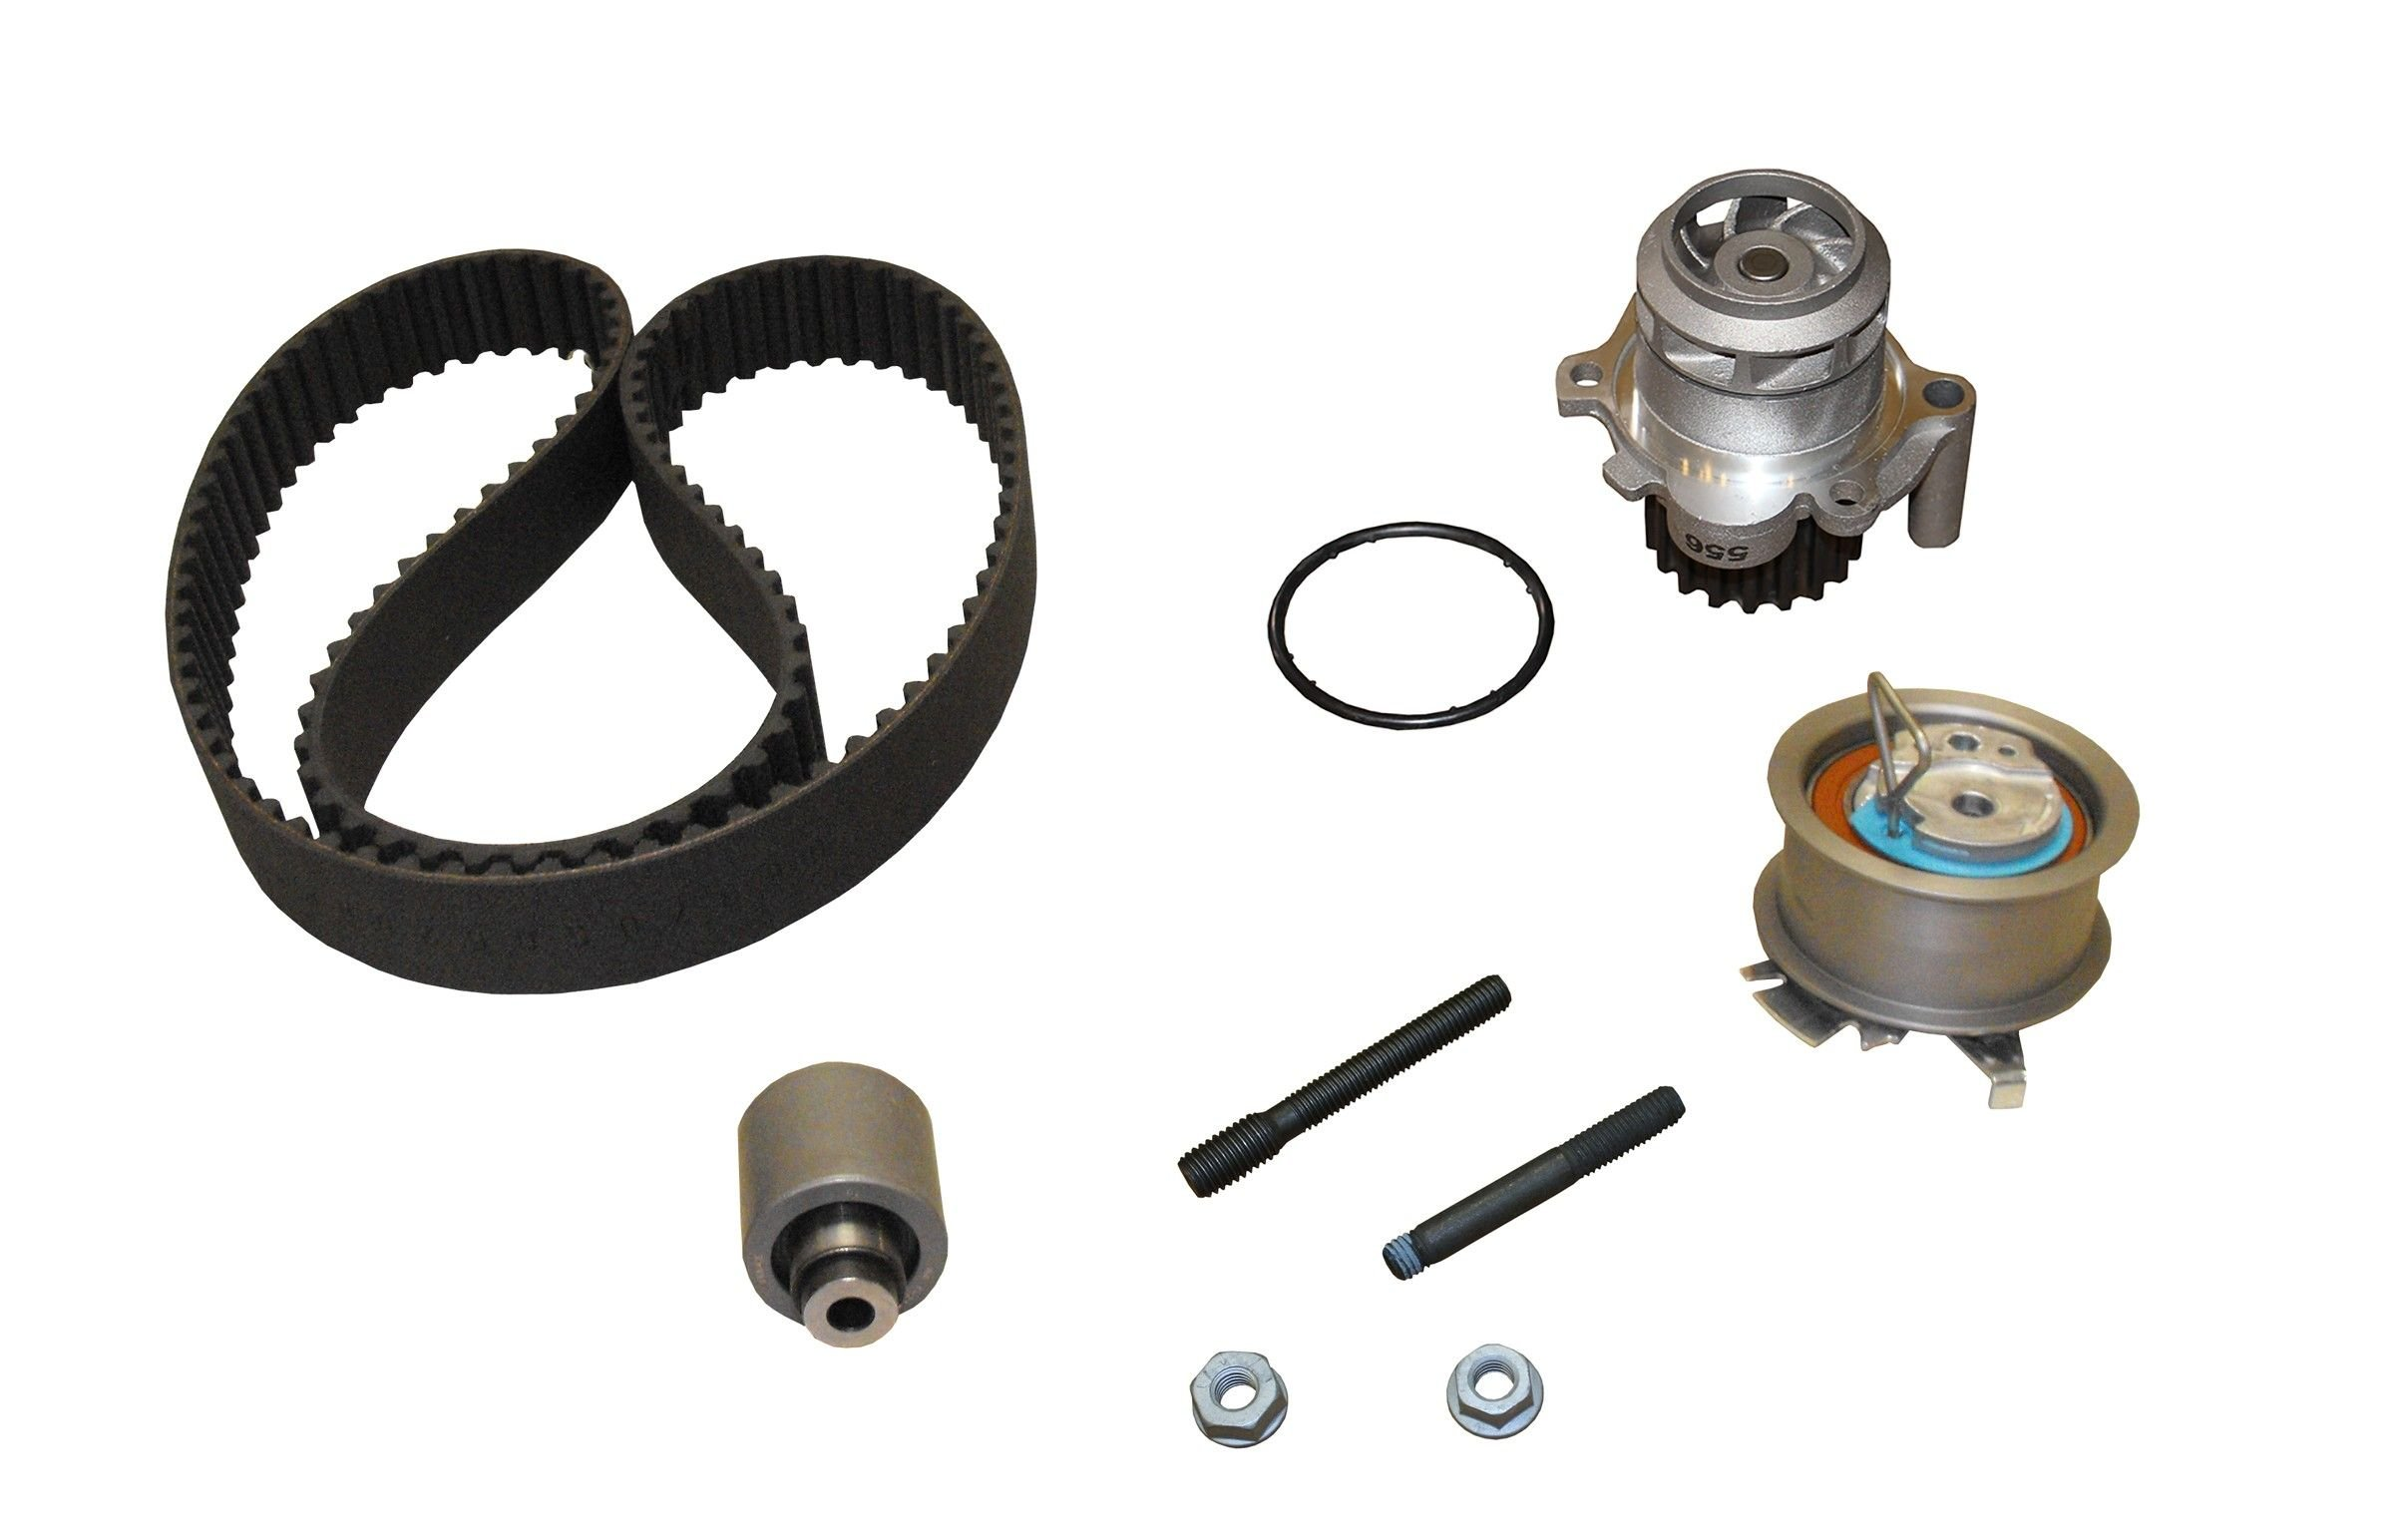 Volkswagen Jetta Engine Timing Belt Kit With Water Pump Replacement Dayco Idler 2006 4 Cyl 19l Crp Tb333lk2 Mi Pro Series Contitech W Metal Impeller Interference Eng